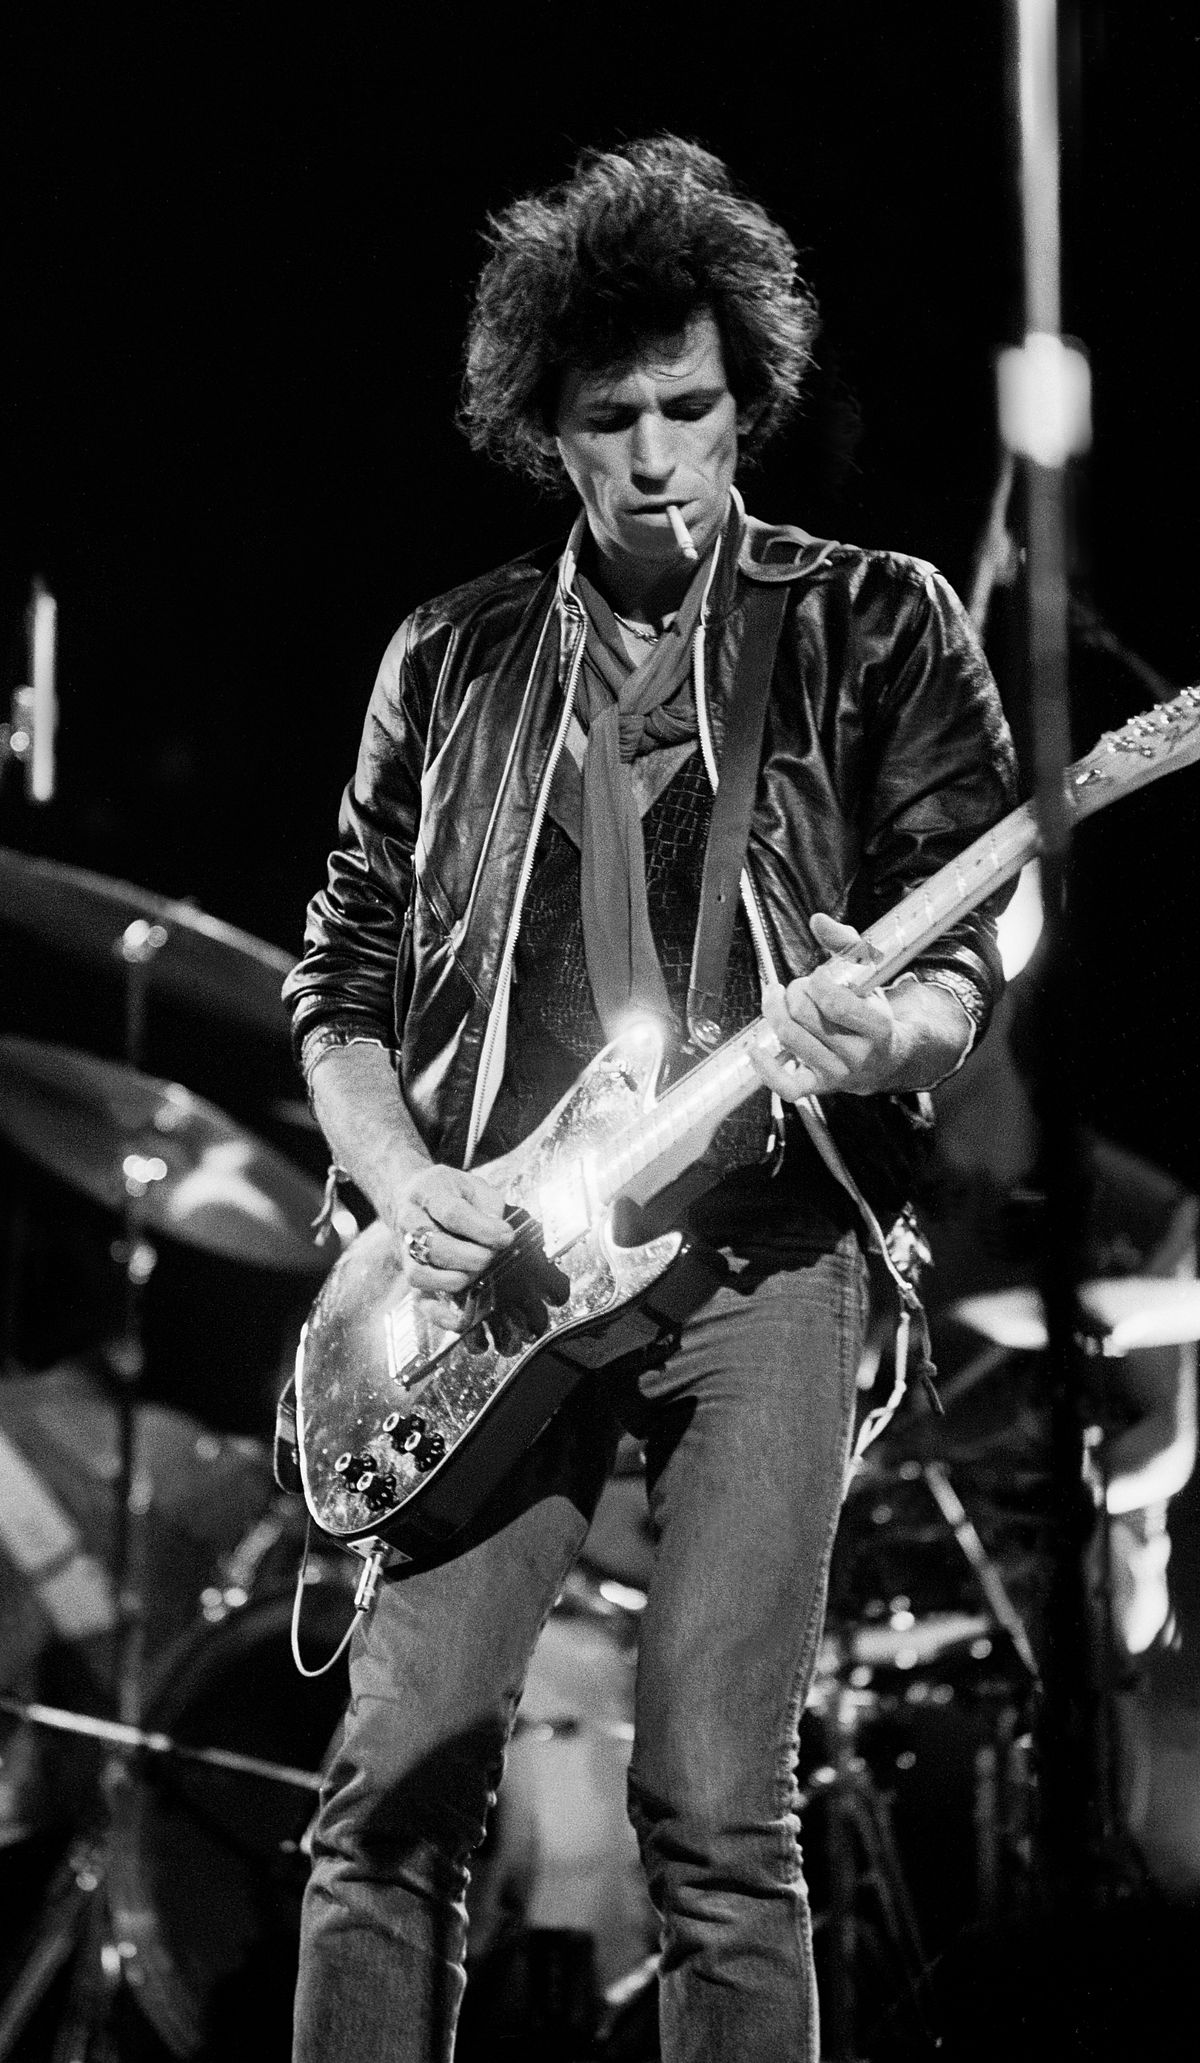 Keith Richards and The Rolling Stones on their North American tour in 1981, photographed in Rockford, Ill. | Photo by Paul Natkin